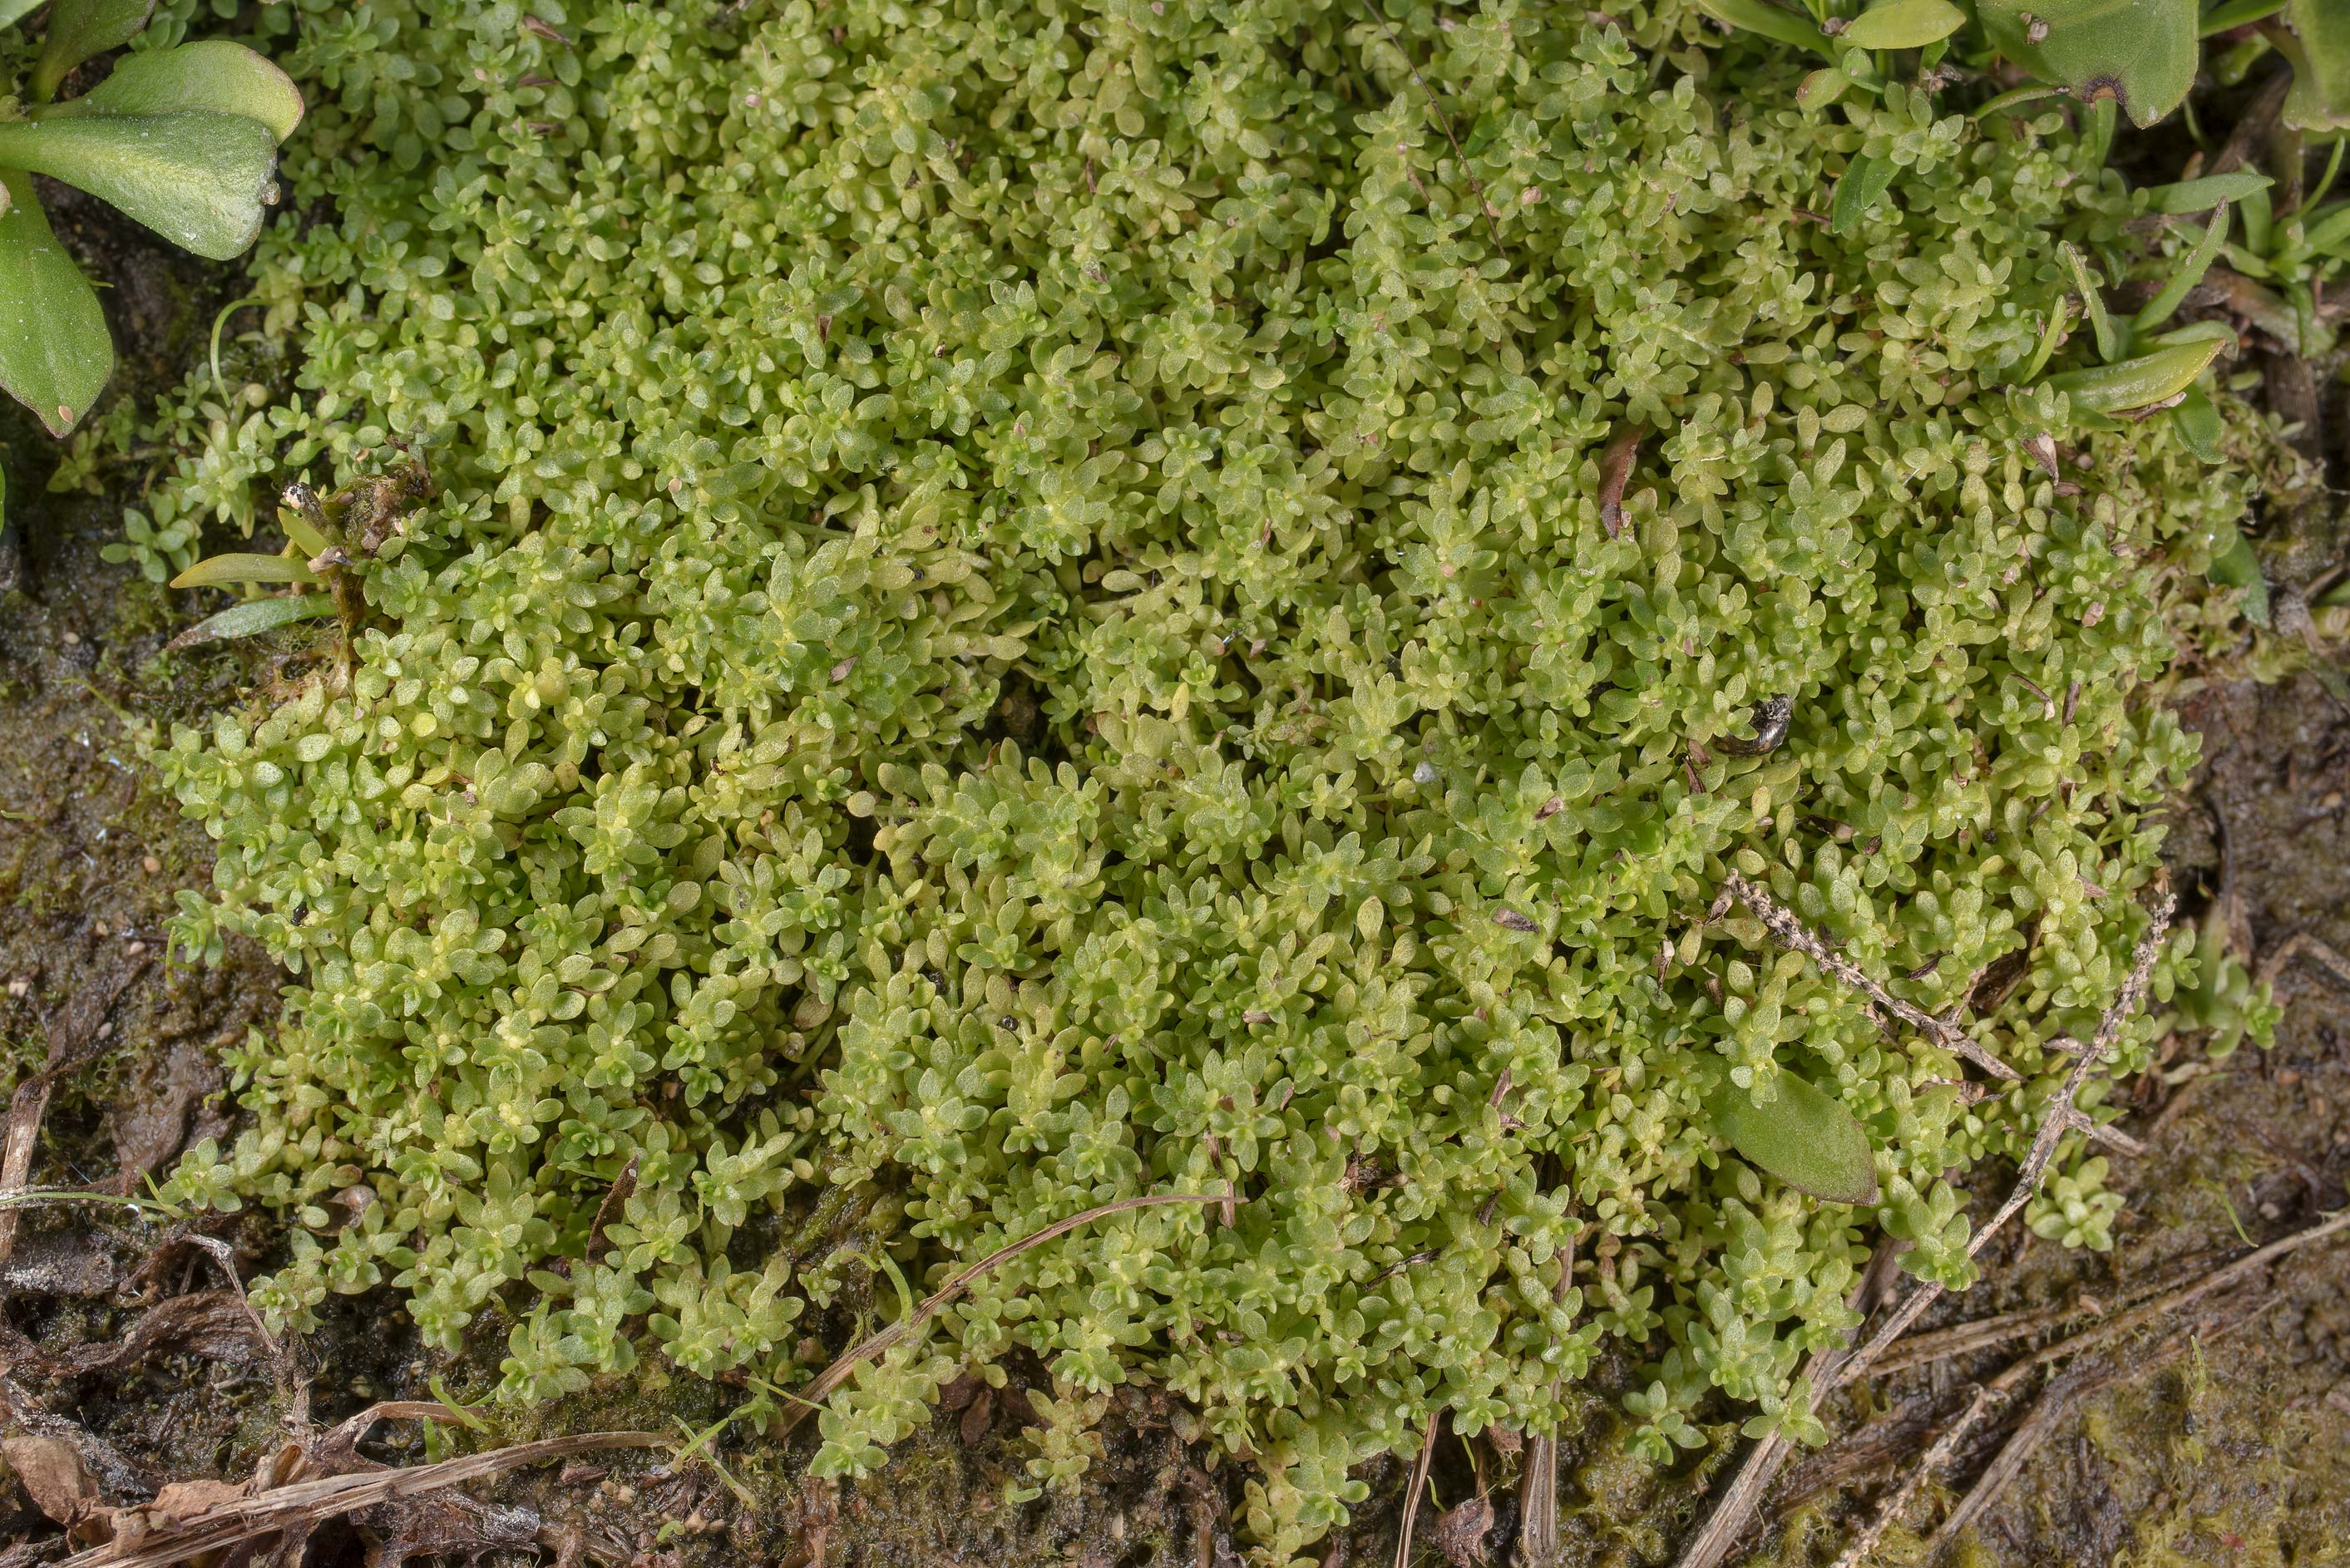 Green mat of a prostrate plant with tiny leaves...of Somerville Lake State Park. Texas